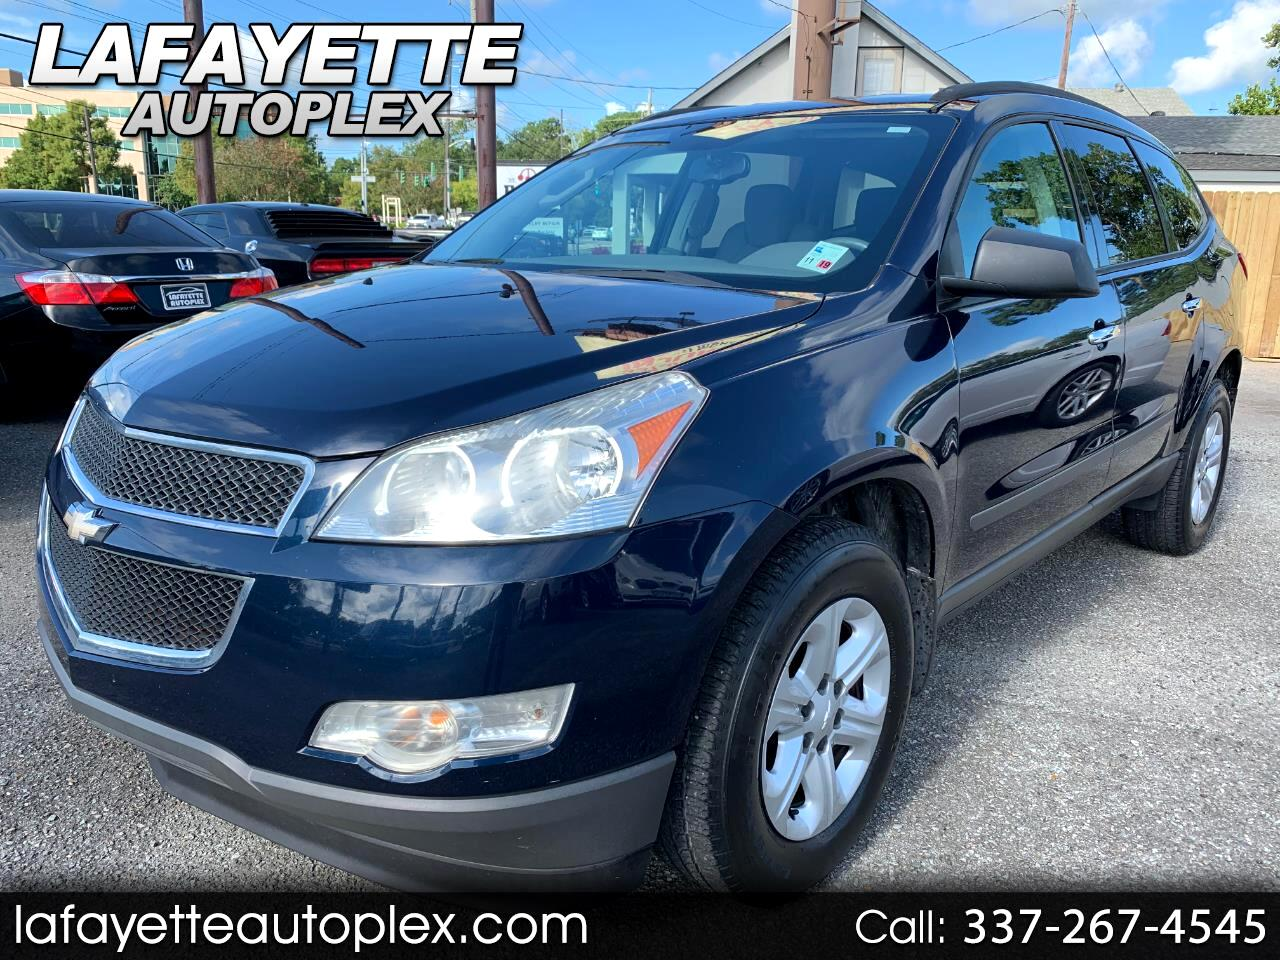 2011 Chevrolet Traverse LS FWD